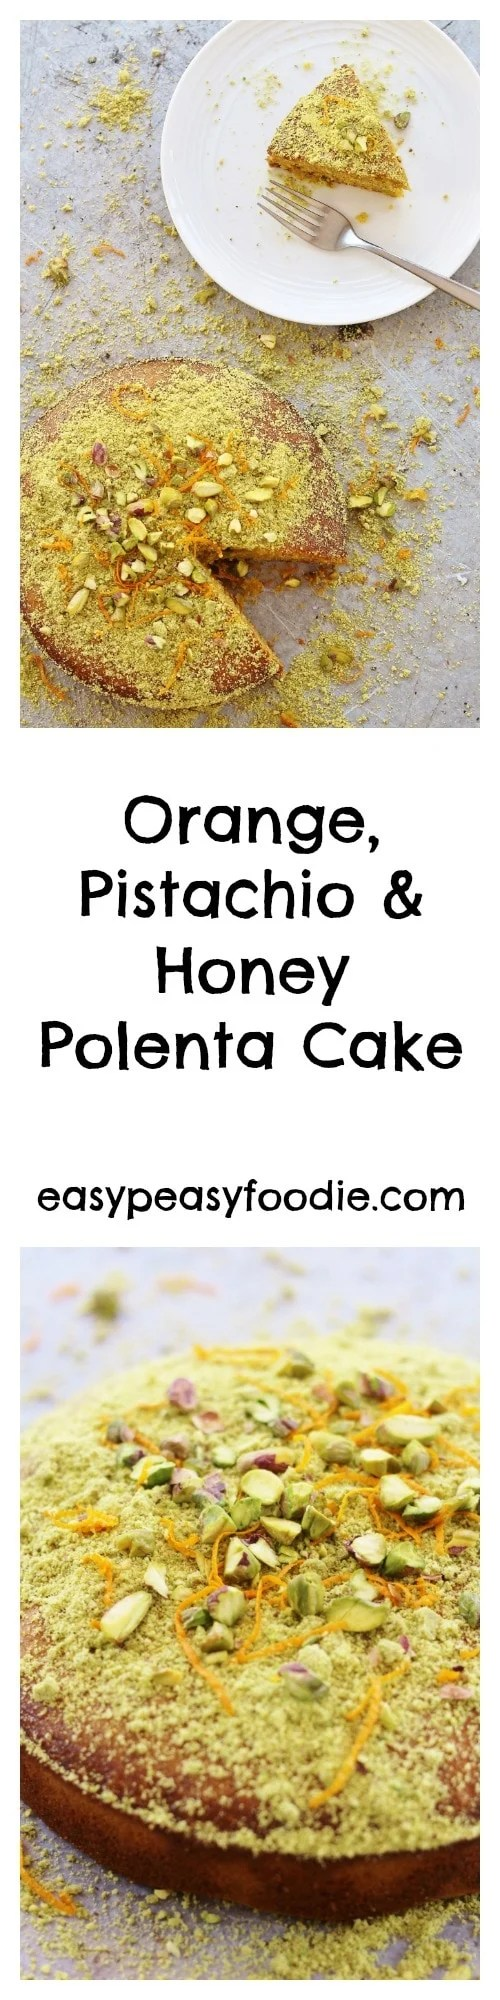 Bursting with the delicious flavours of the Mediterranean, this Orange, Pistachio and Honey Polenta Cake, is naturally gluten free, dairy free AND refined sugar free. It's also very easy to make and, of course, totally delicious! Perfect for #MothersDay or #Easter! #orange #pistachio #honey #polenta #polentacake #glutenfree #refinedsugarfree #dairyfree #motheringsunday #eastercake #easterbaking #easybaking #easypeasyfoodie